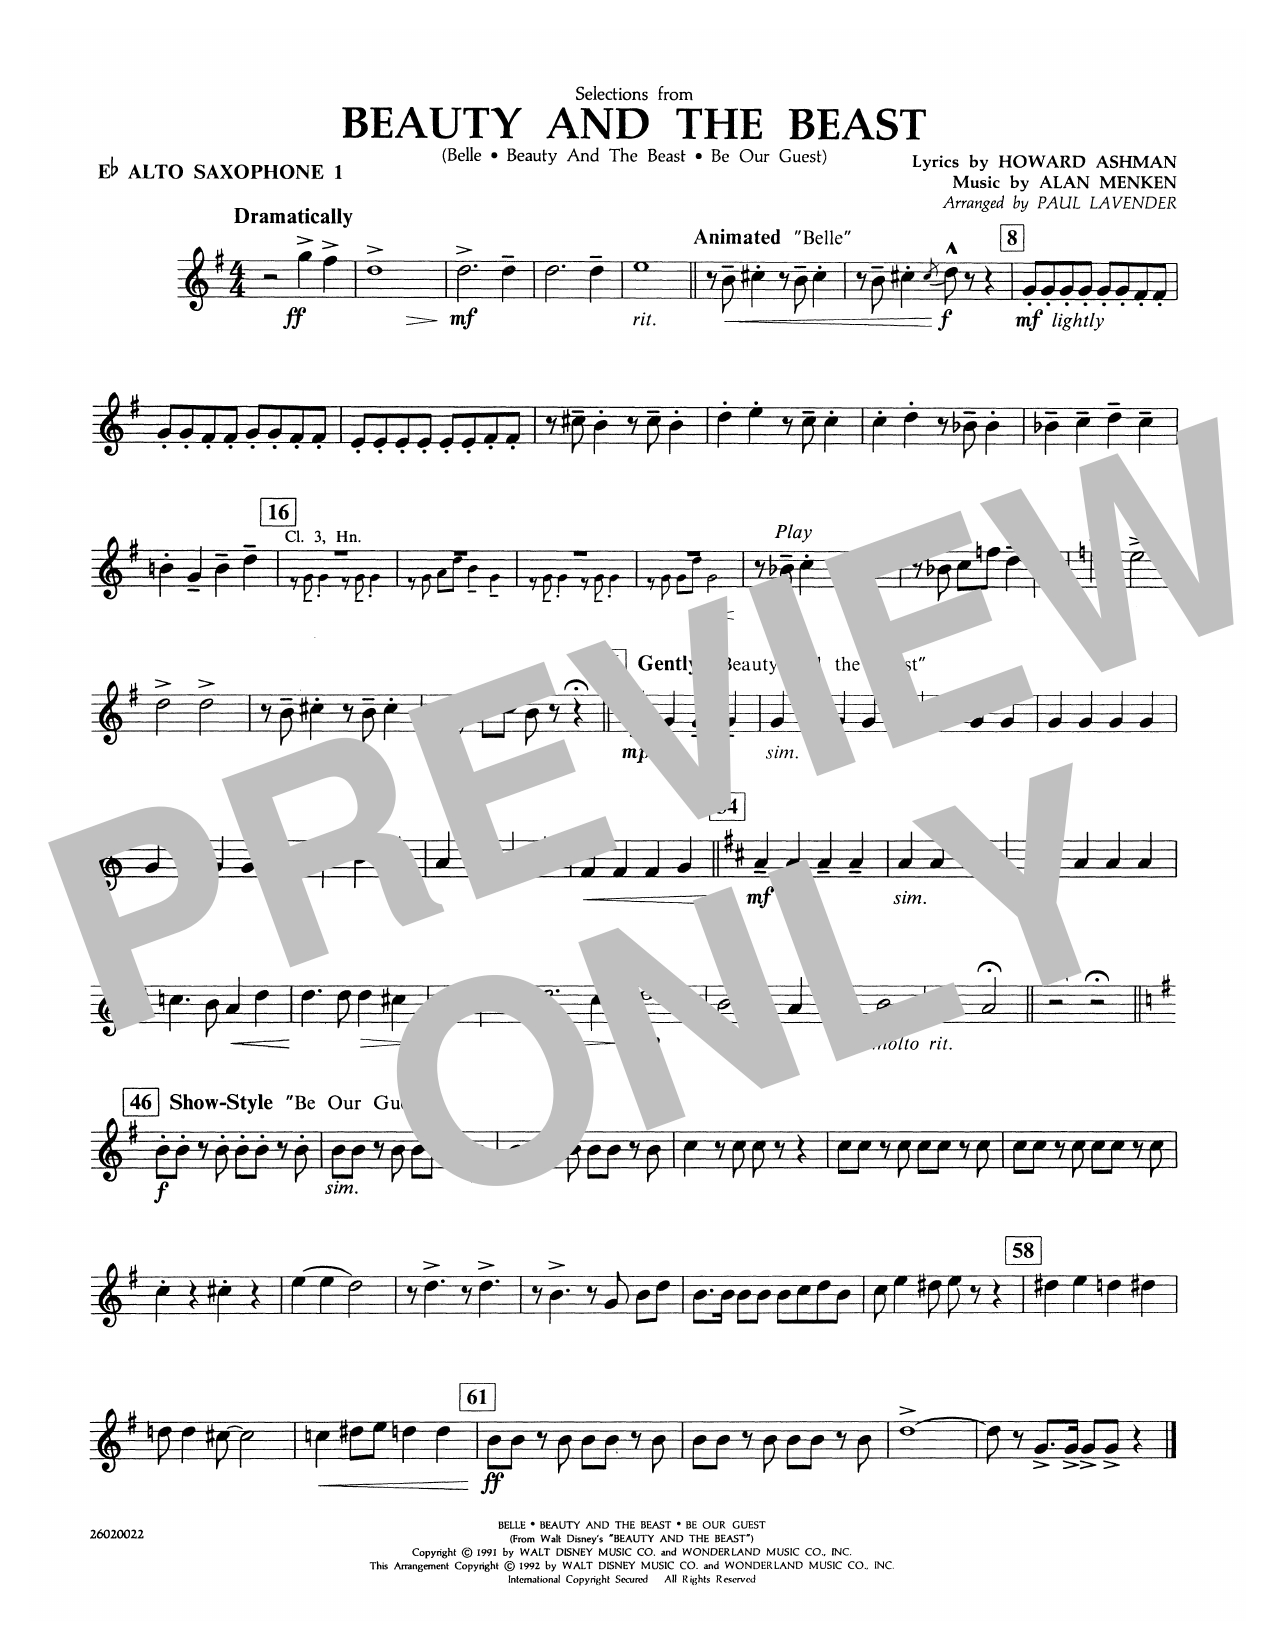 Paul Lavender Selections from Beauty and the Beast - Eb Alto Sax 1 sheet music notes and chords. Download Printable PDF.